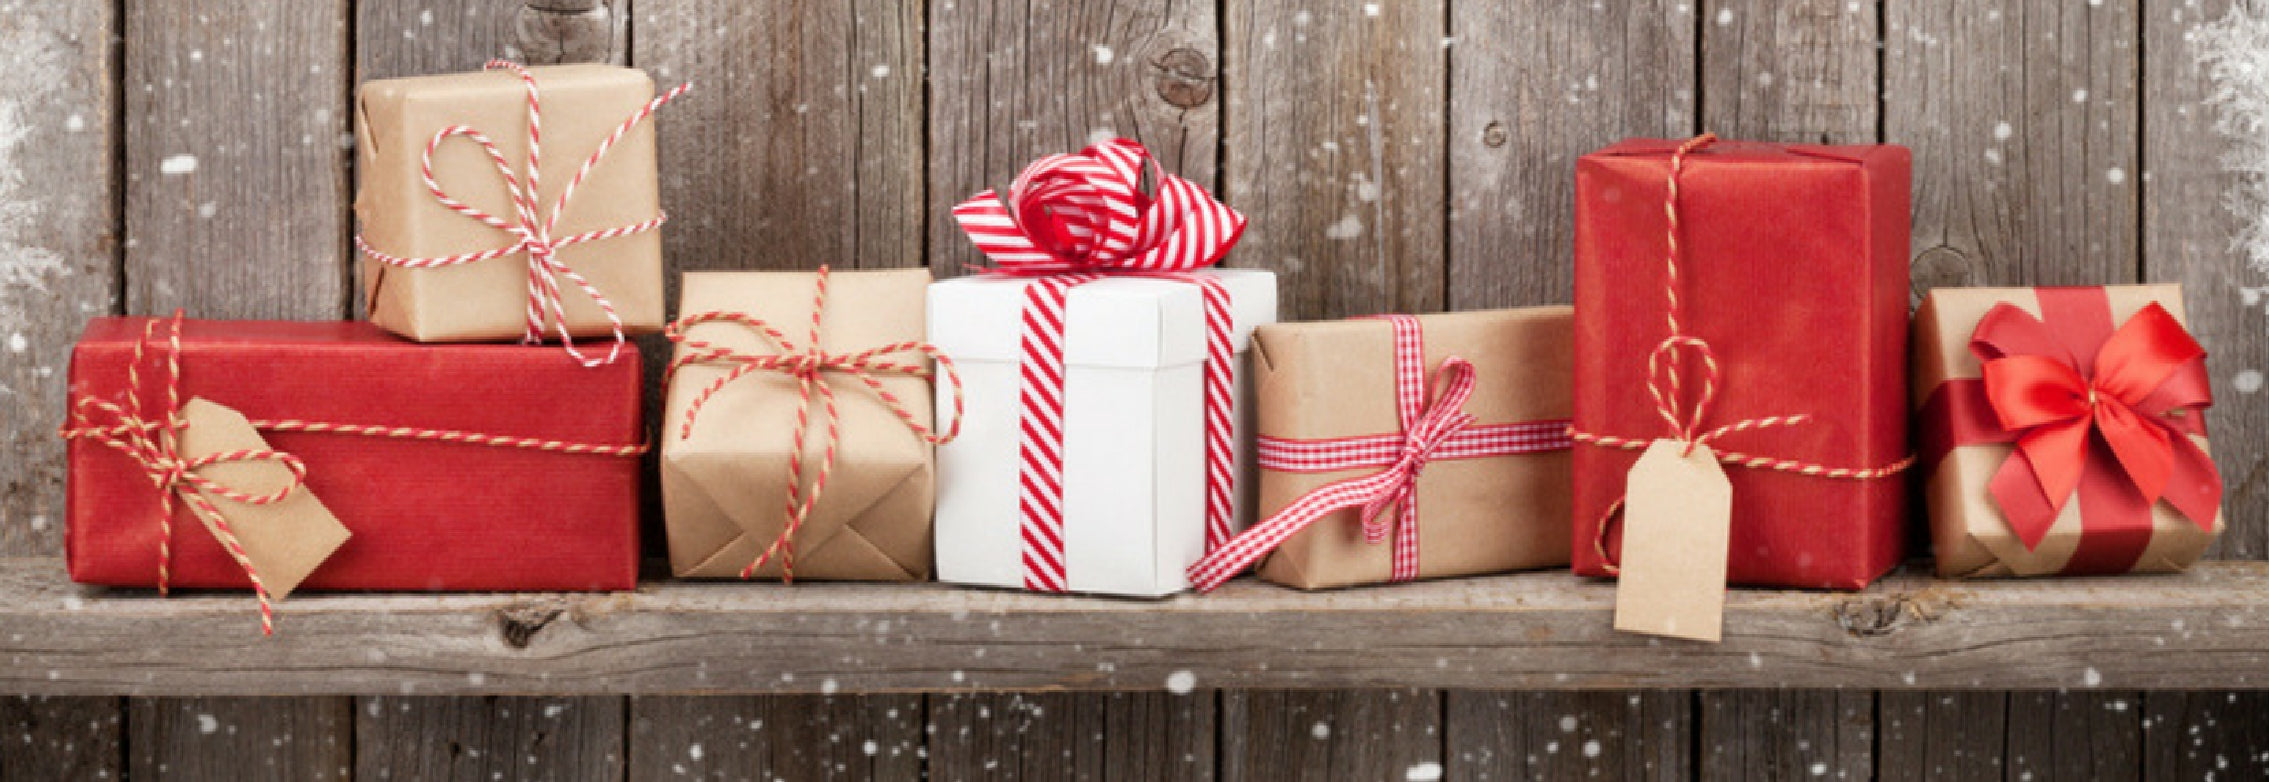 Collection of gift packages